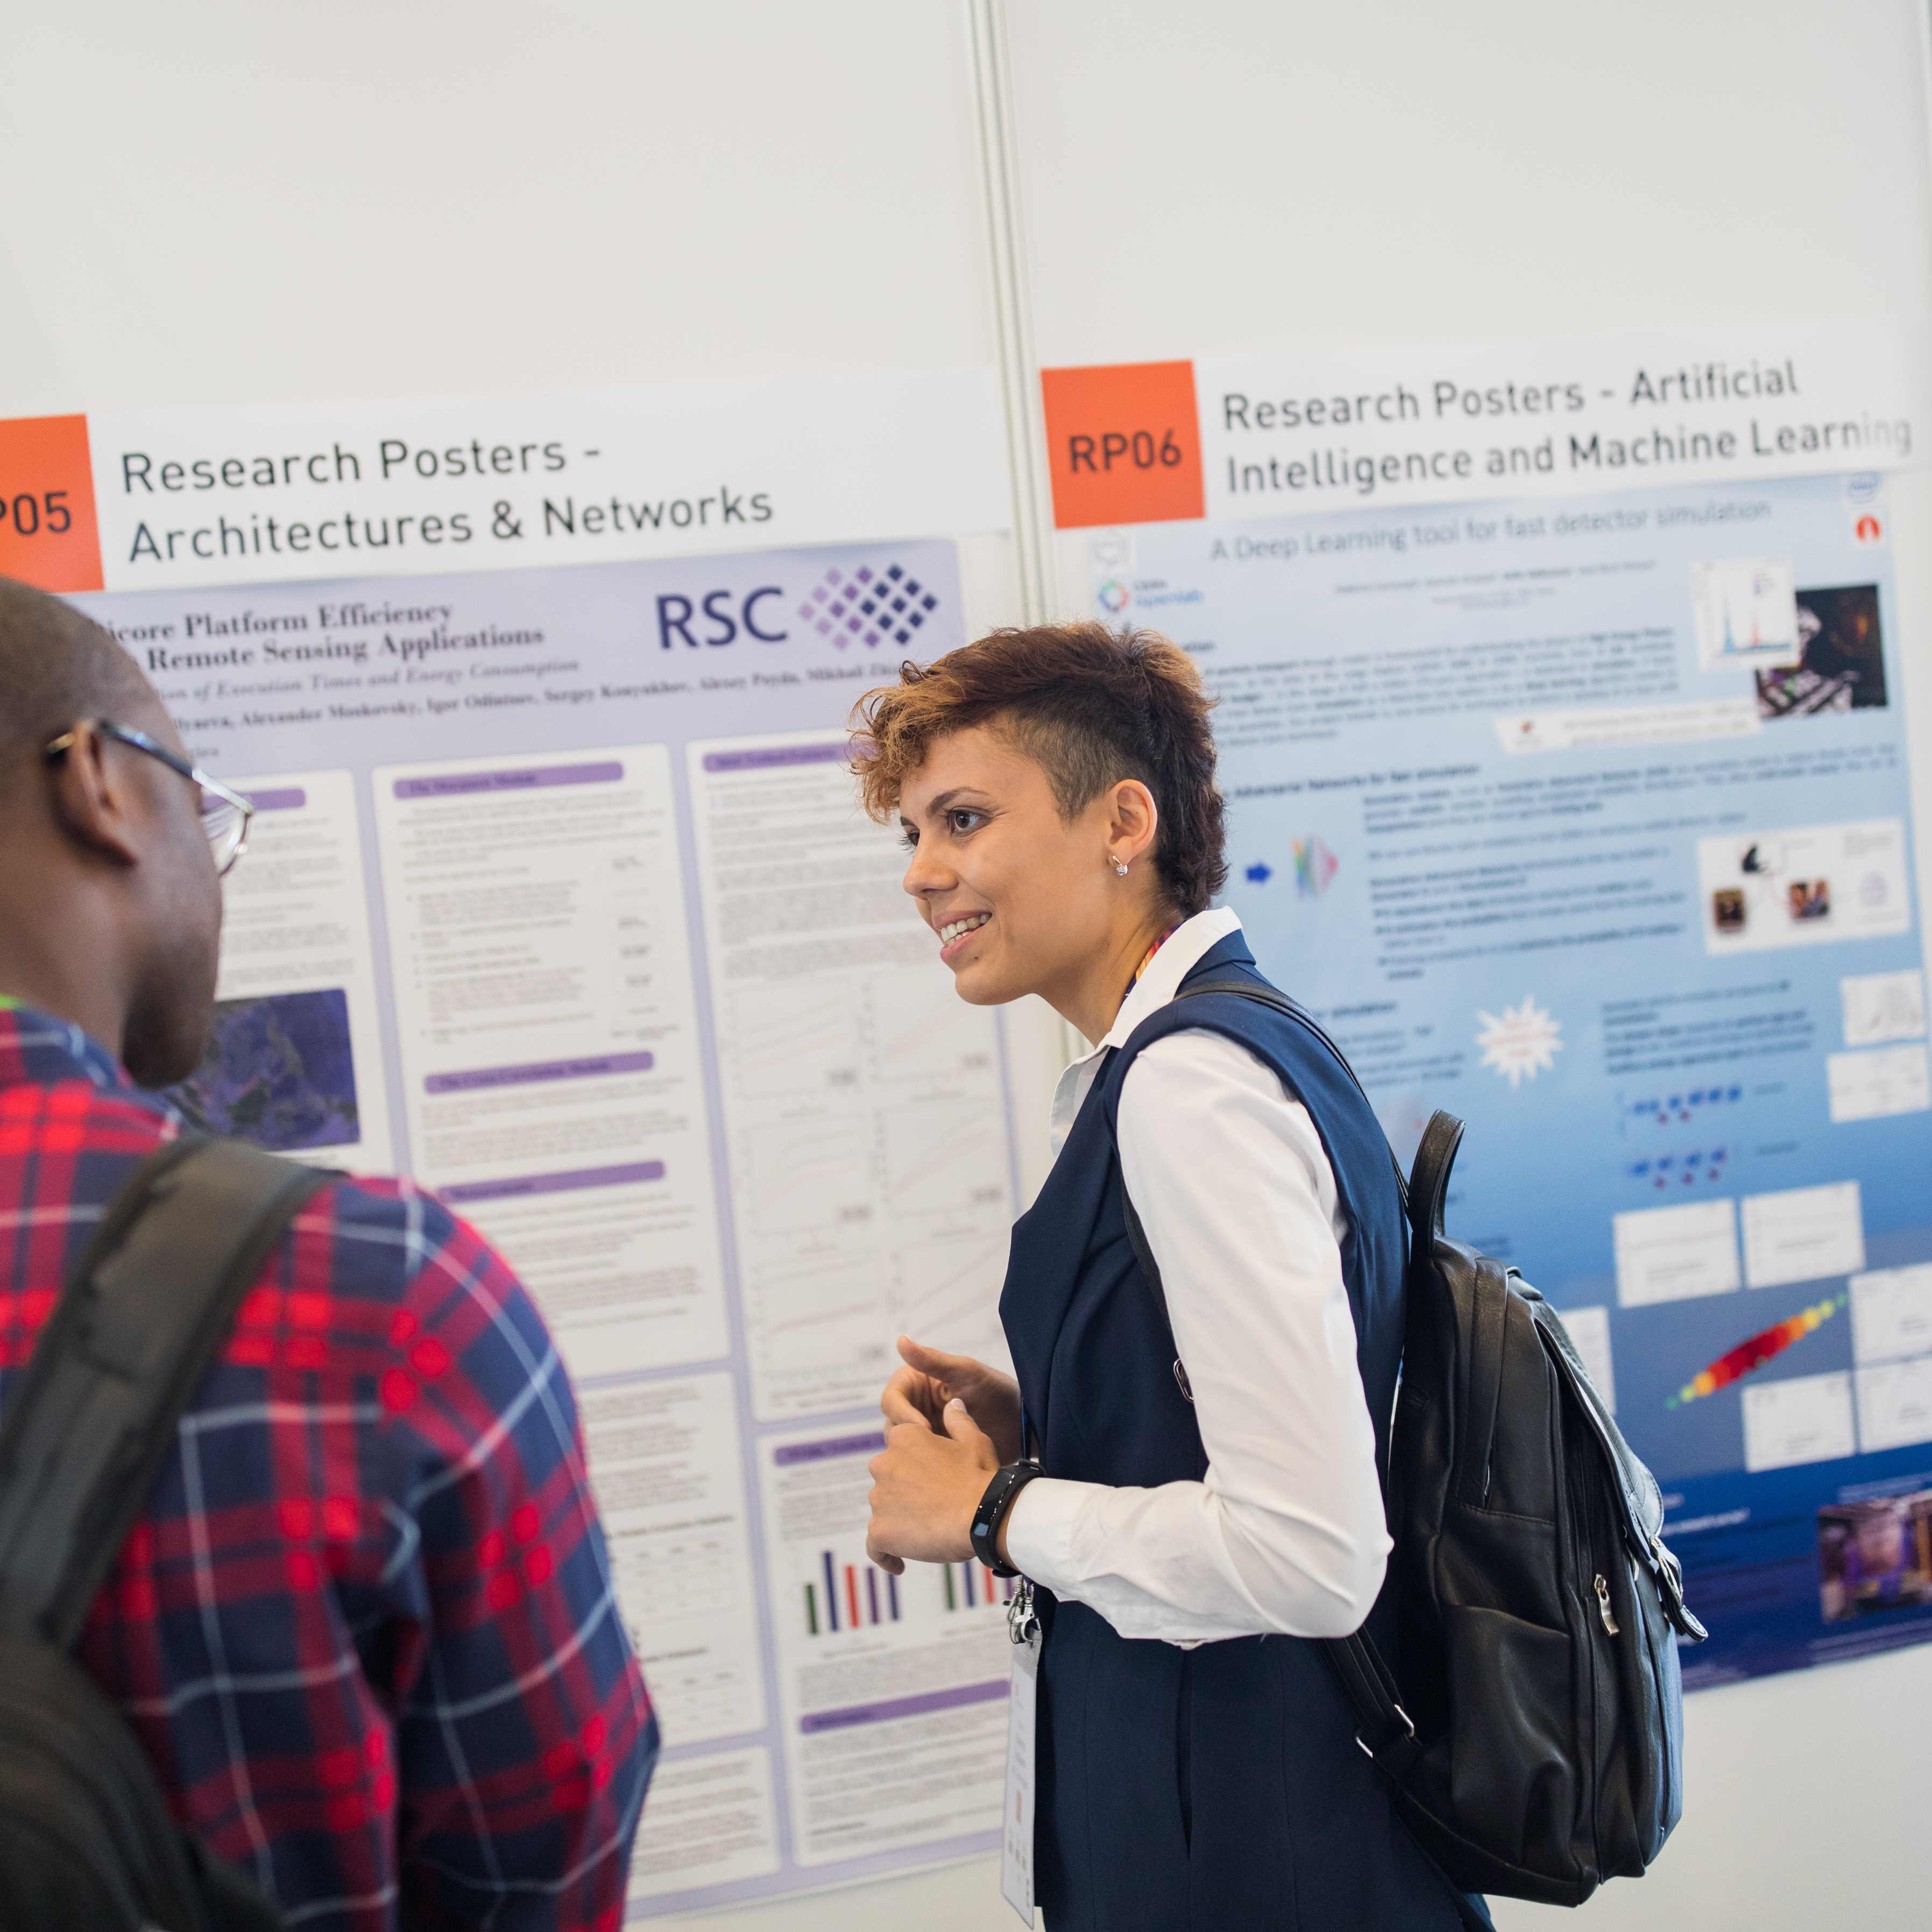 ISC2018 Research Posters